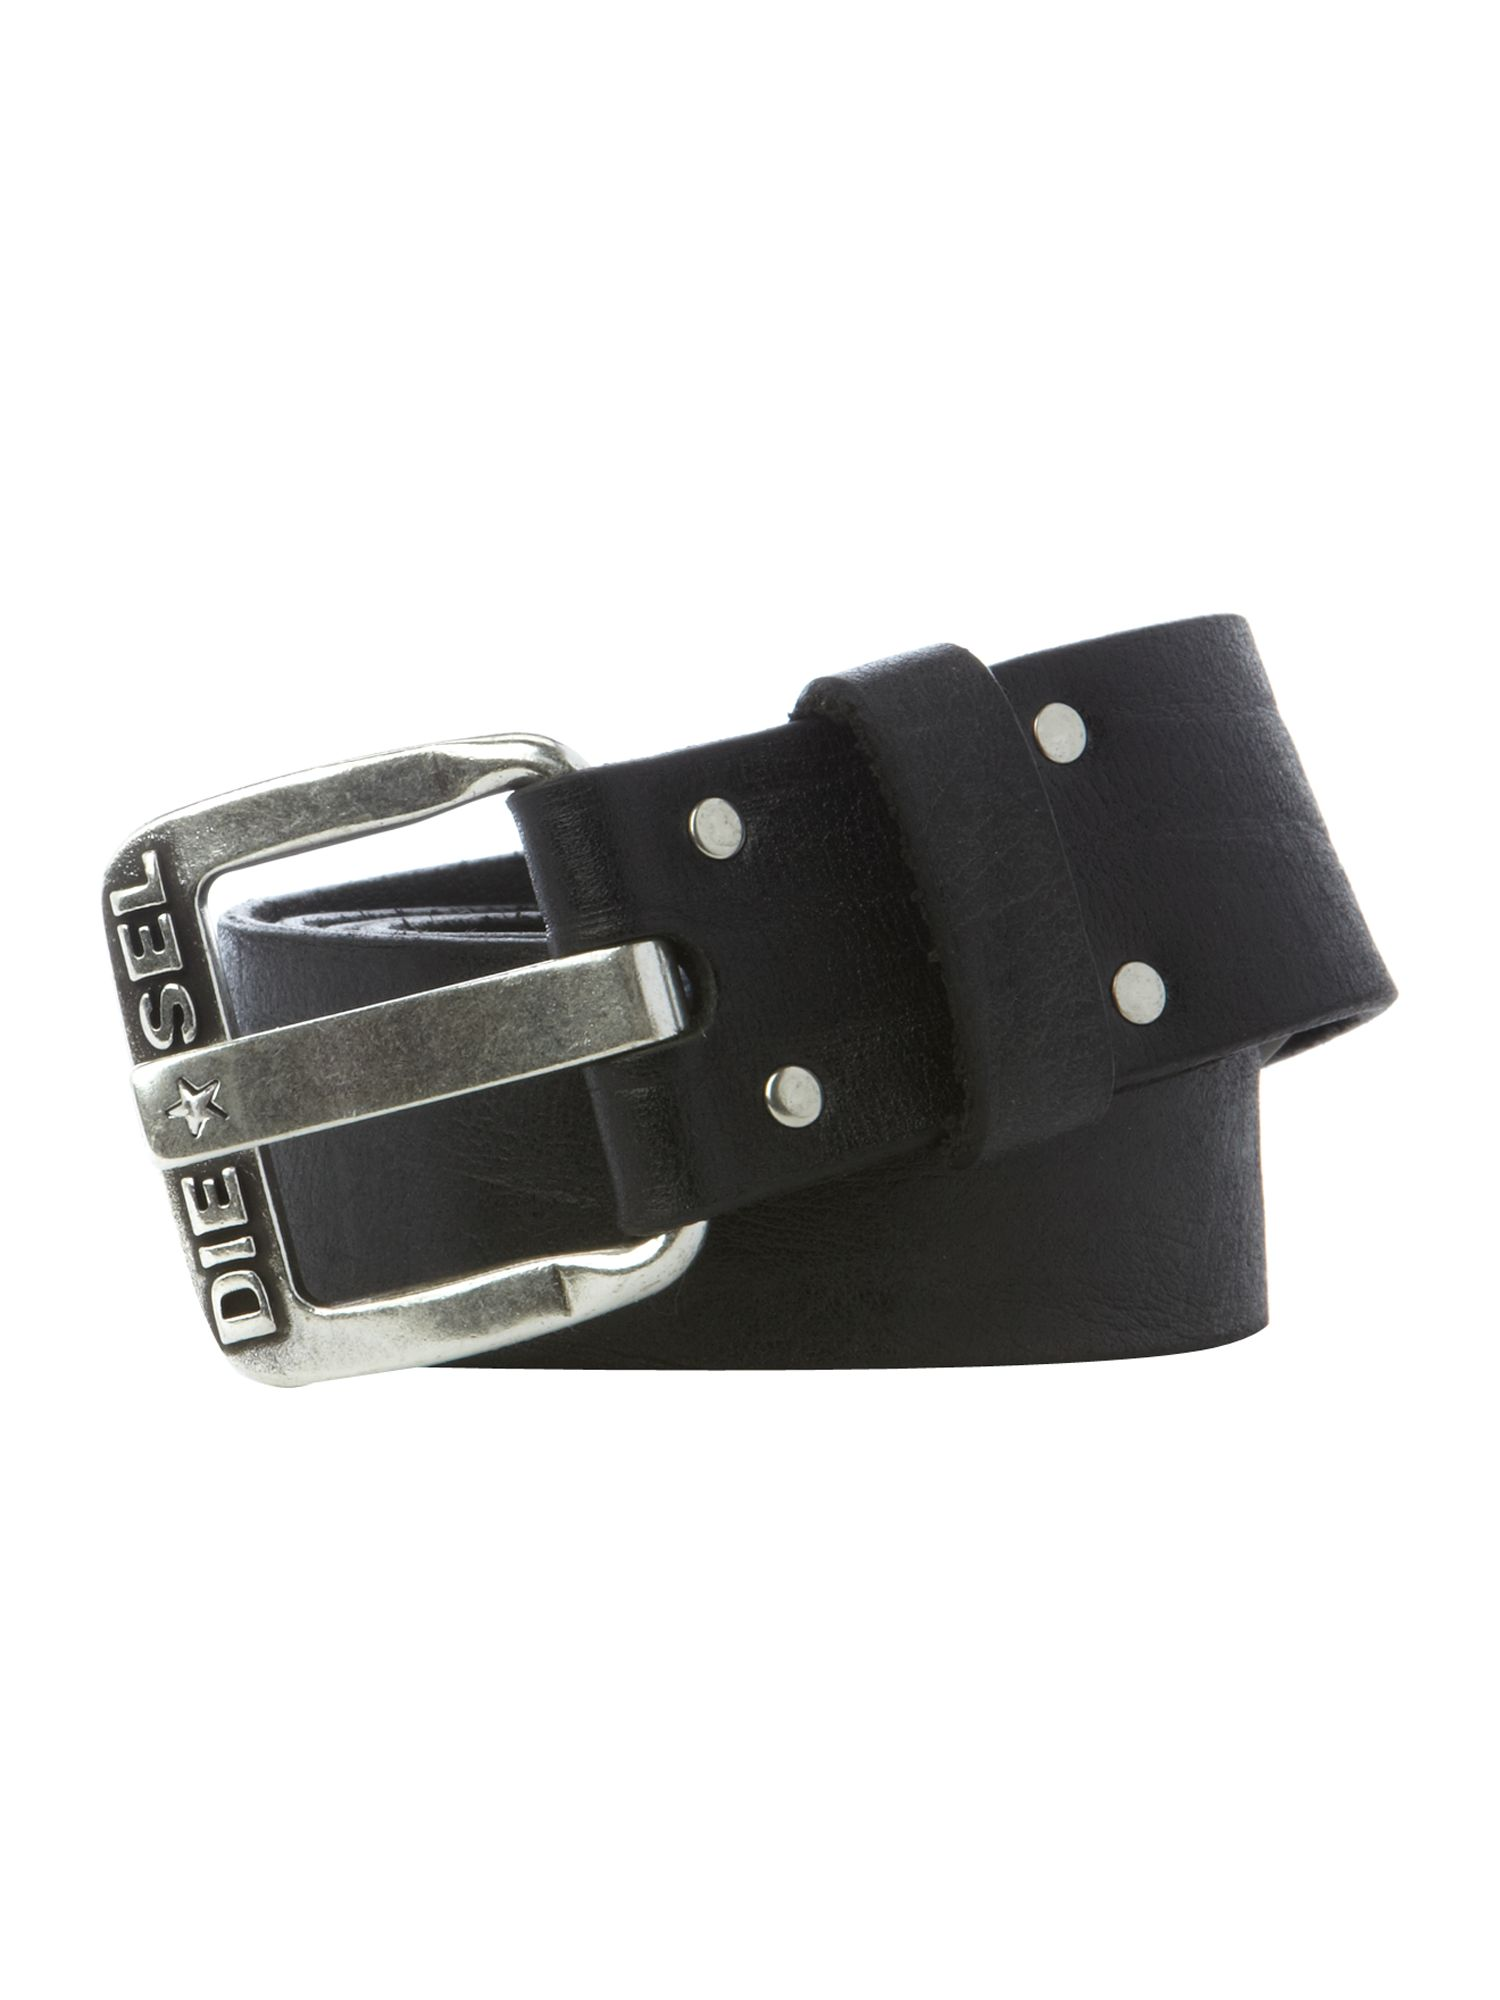 B star pin belt